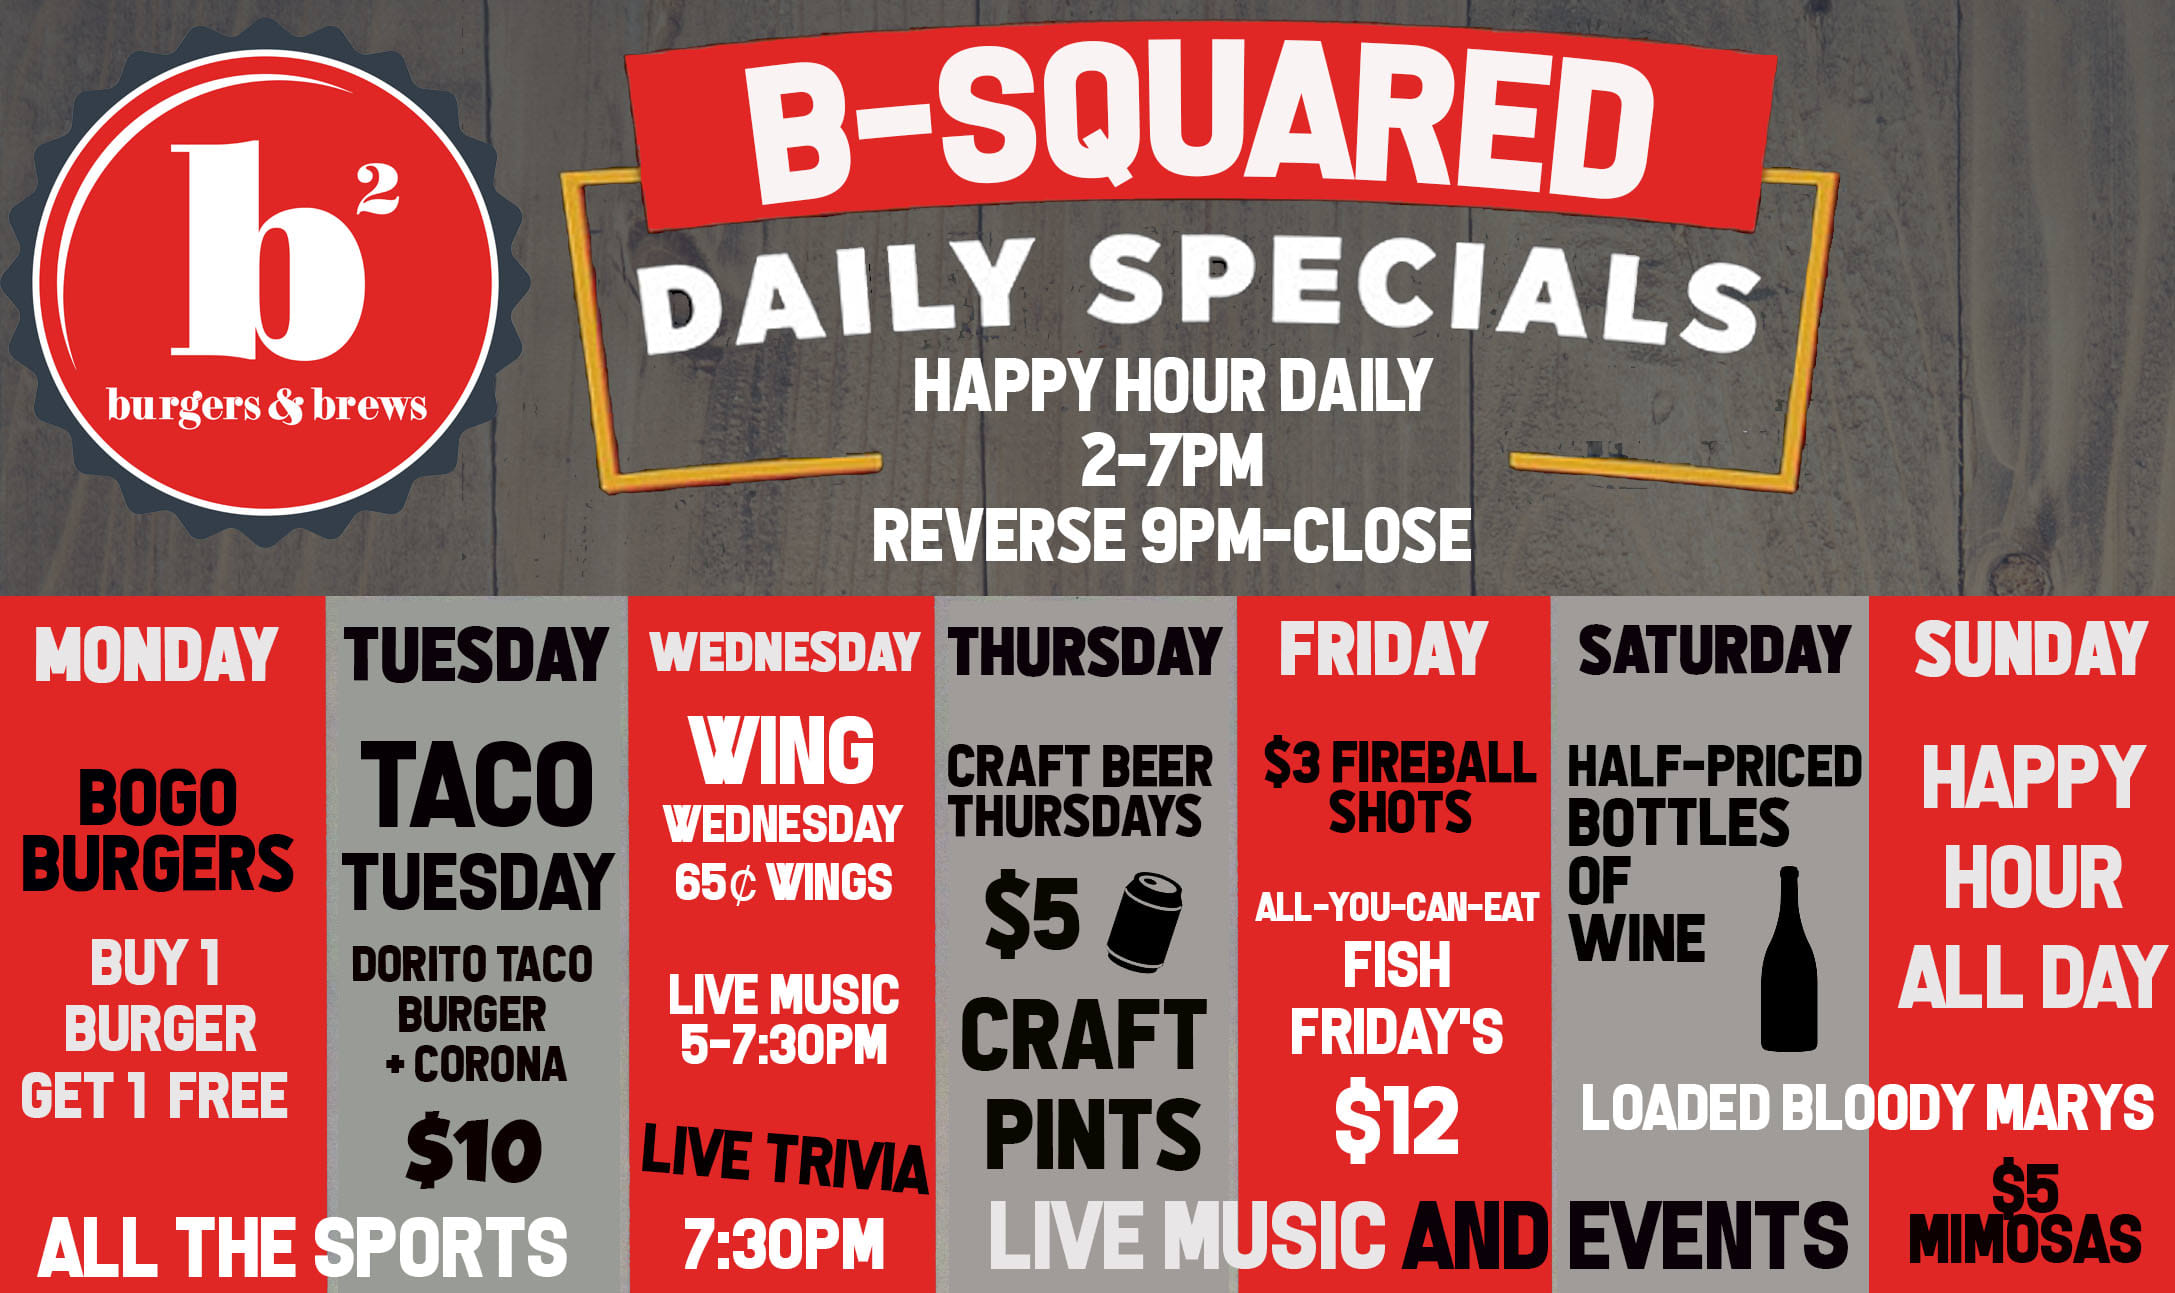 bsquared daily specials